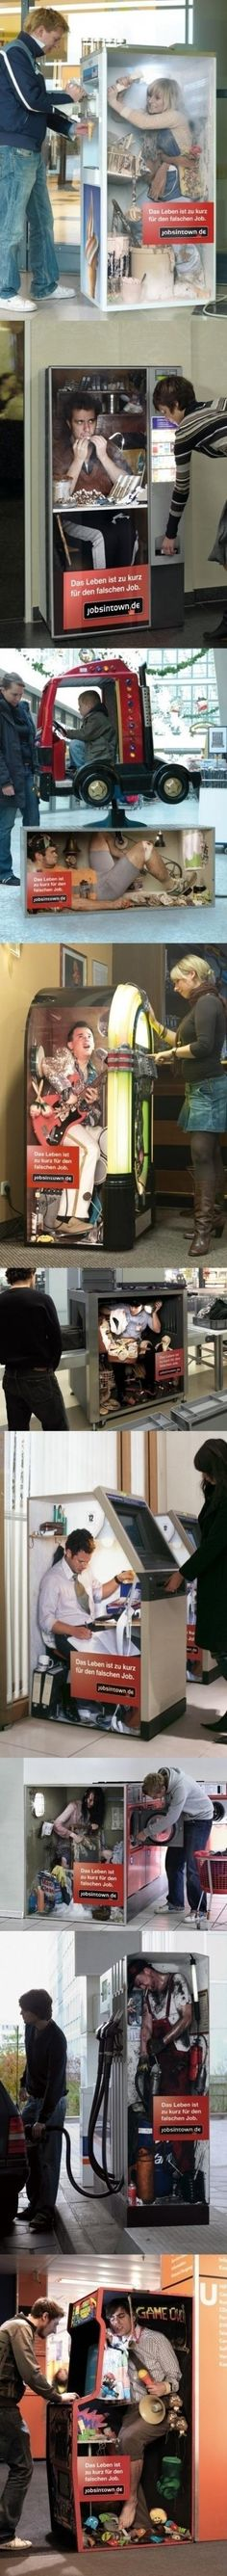 Some German Advertising, these are great!